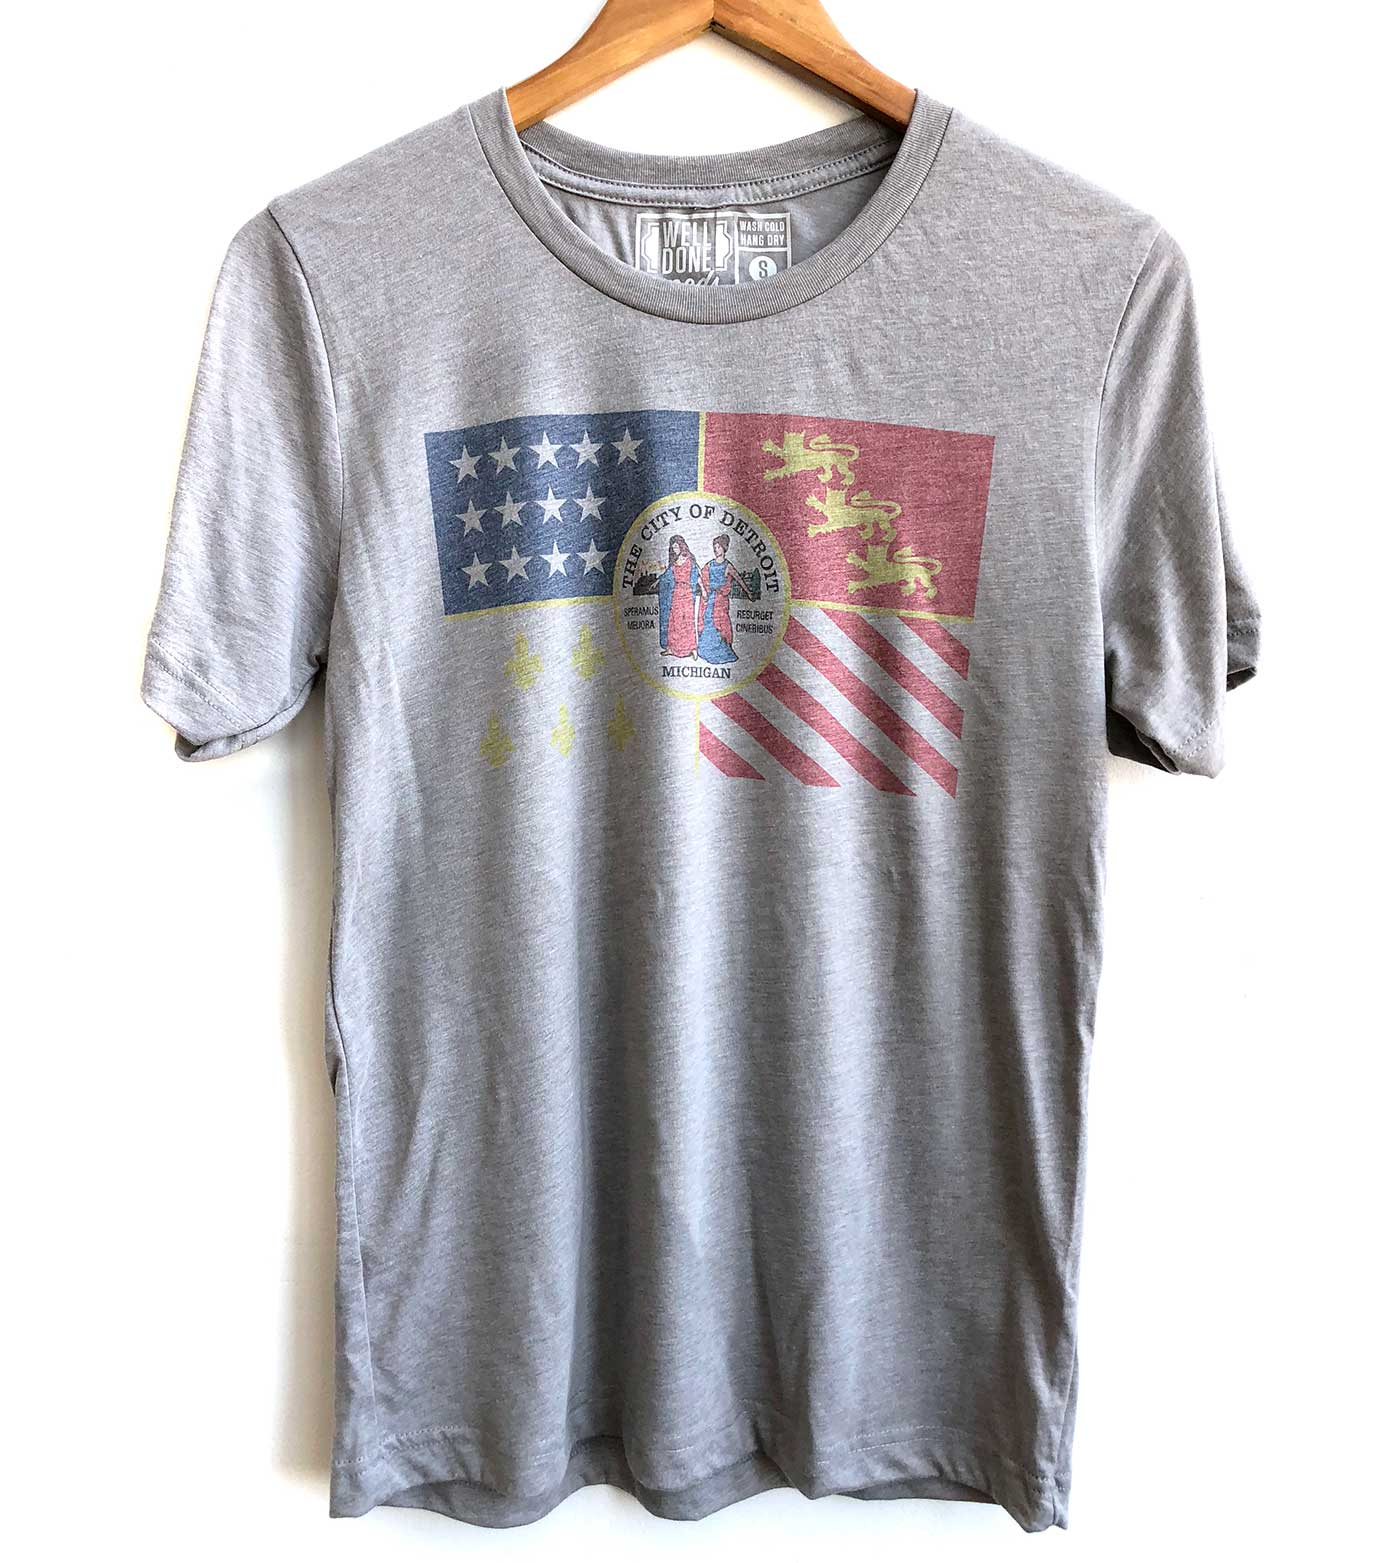 e57bed07c Detroit City Flag Vintage Style T-Shirt